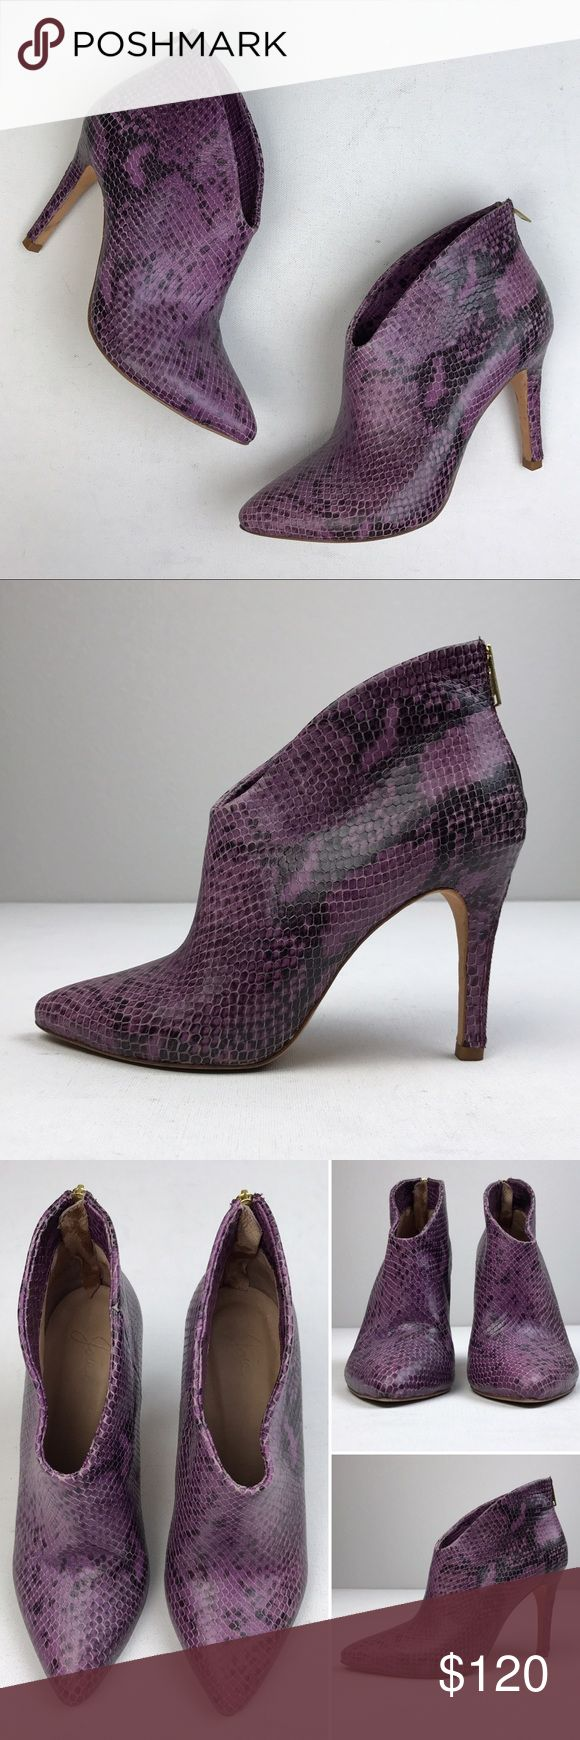 """Joie purple snake print leather booties In great condition. Only worn once. Leather upper and soles. Zipper embellished on the heel. Size 37"""". Joie Shoes Ankle Boots & Booties"""